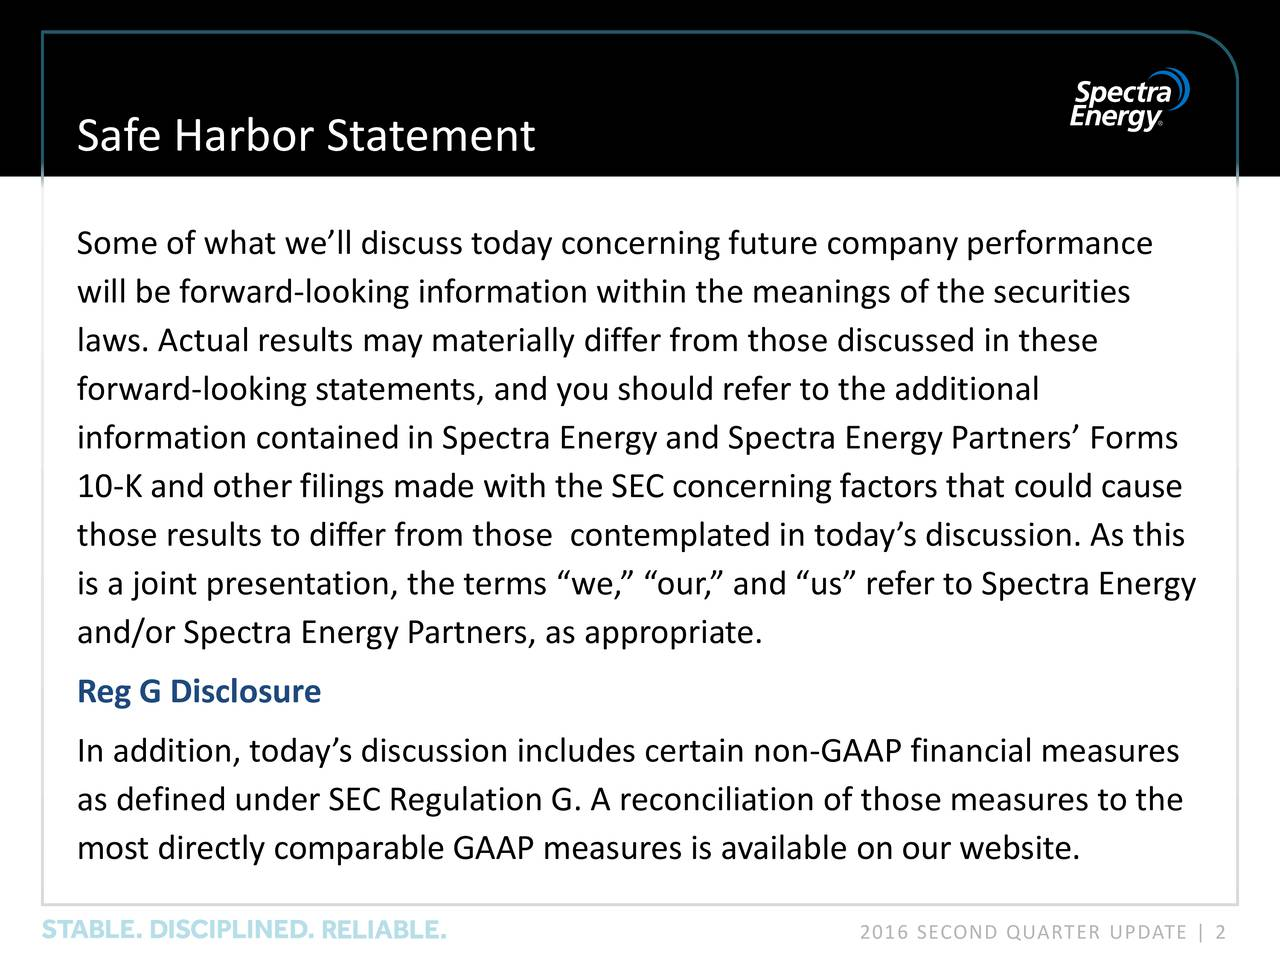 Some of what well discuss today concerning future company performance will be forward-looking information within the meanings of the securities laws. Actual results may materially differ from those discussed in these forward-looking statements, and you should refer to the additional information contained in Spectra Energy and Spectra Energy Partners Forms 10-K and other filings made with the SEC concerning factors that could cause those results to differ from those contemplated in todays discussion. As this is a joint presentation, the terms we, our, and us refer to Spectra Energy and/or Spectra Energy Partners, as appropriate. Reg G Disclosure In addition, todays discussion includes certain non-GAAP financial measures as defined under SEC Regulation G. A reconciliation of those measures to the most directly comparable GAAP measures is available on our website. 2016 SECOND QUARTER UPDATE | 2